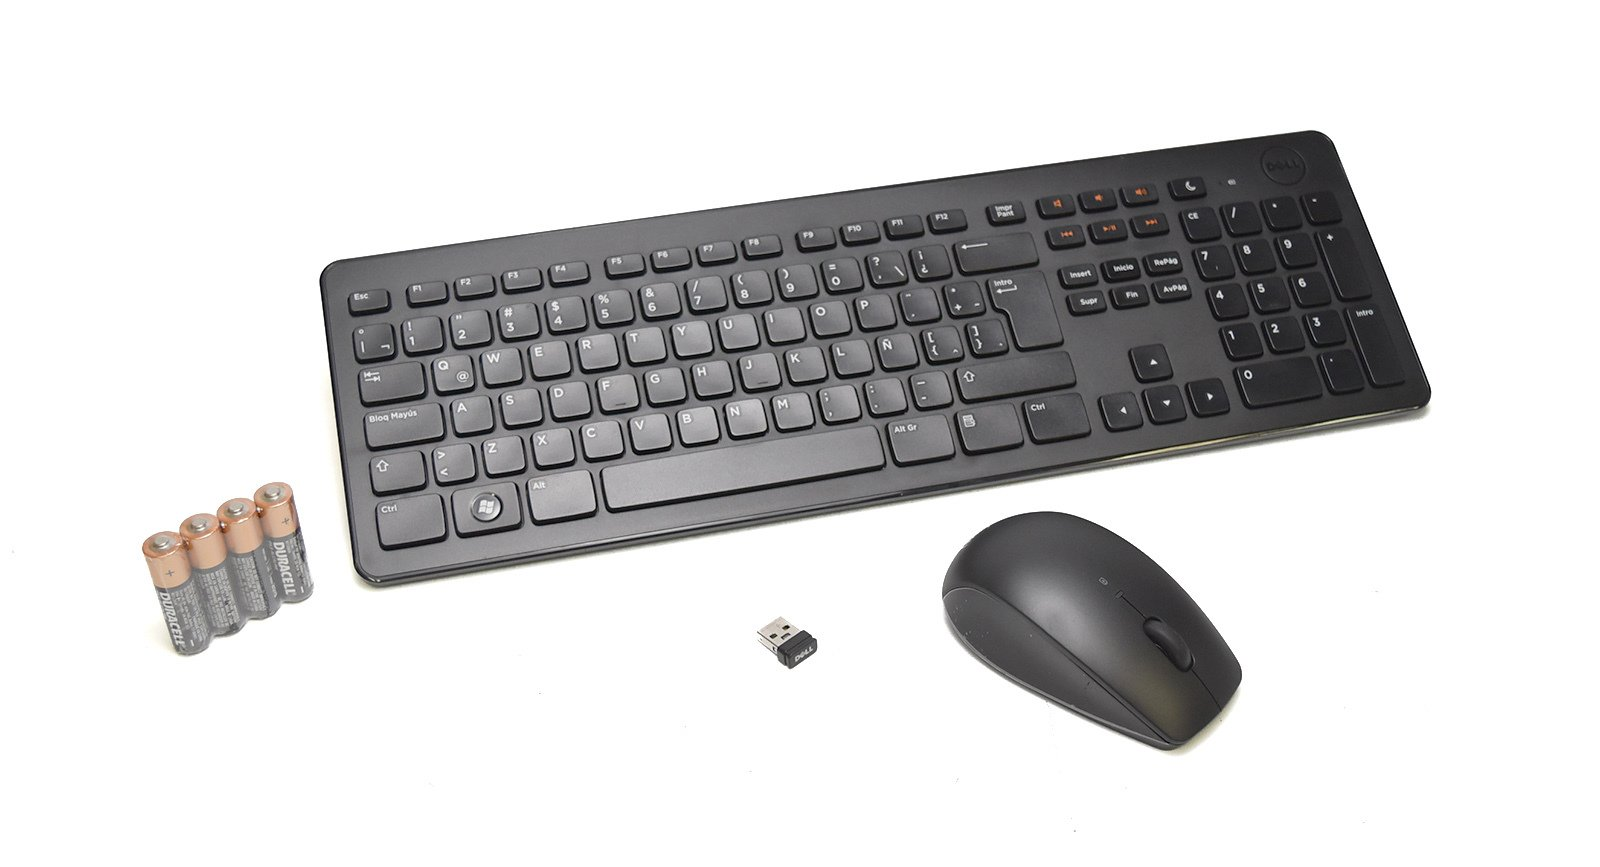 Refurbished R07JT Genuine OEM Dell Spanish KM632 Wireless Keyboard+Mouse+Receiver Factory Synched Set LAT-AMERICAN USB KIT Cordless Mouse/Keyboard RF Retail Box USB Spanish QWERTY w/Number Pad M1XF1